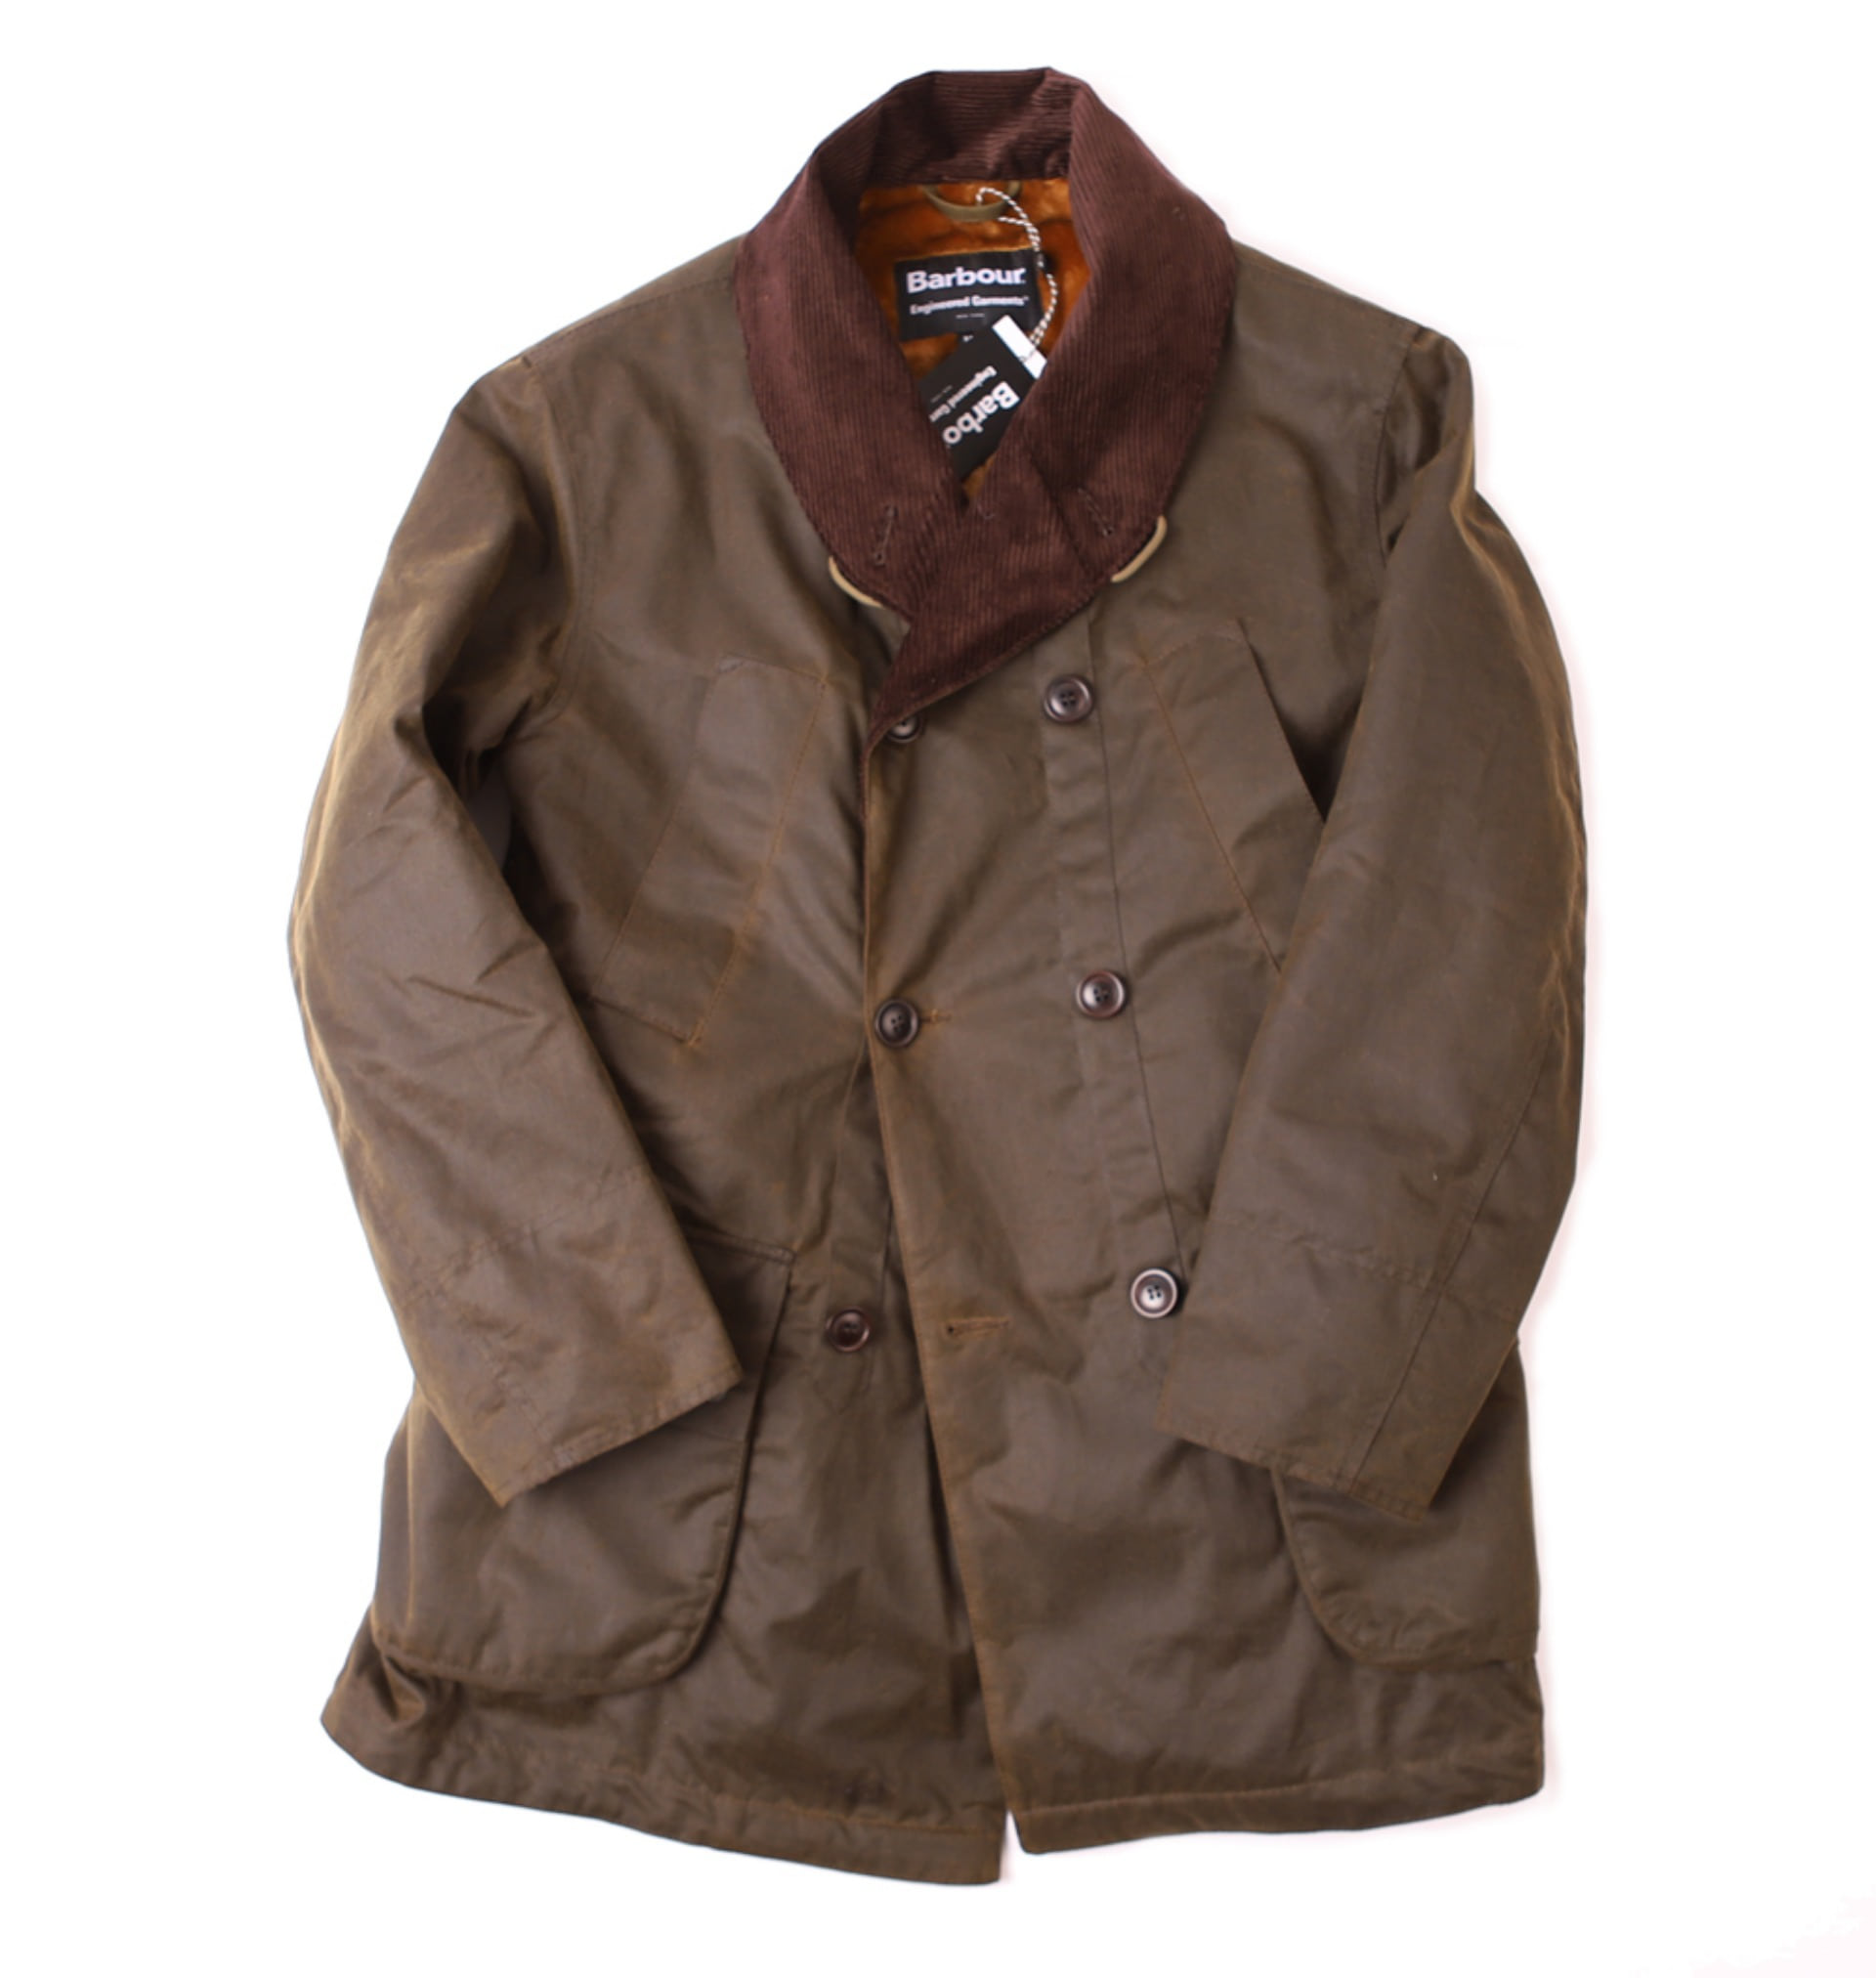 Barbour x Engineer GarmentsMackinaw Coat(Olive)